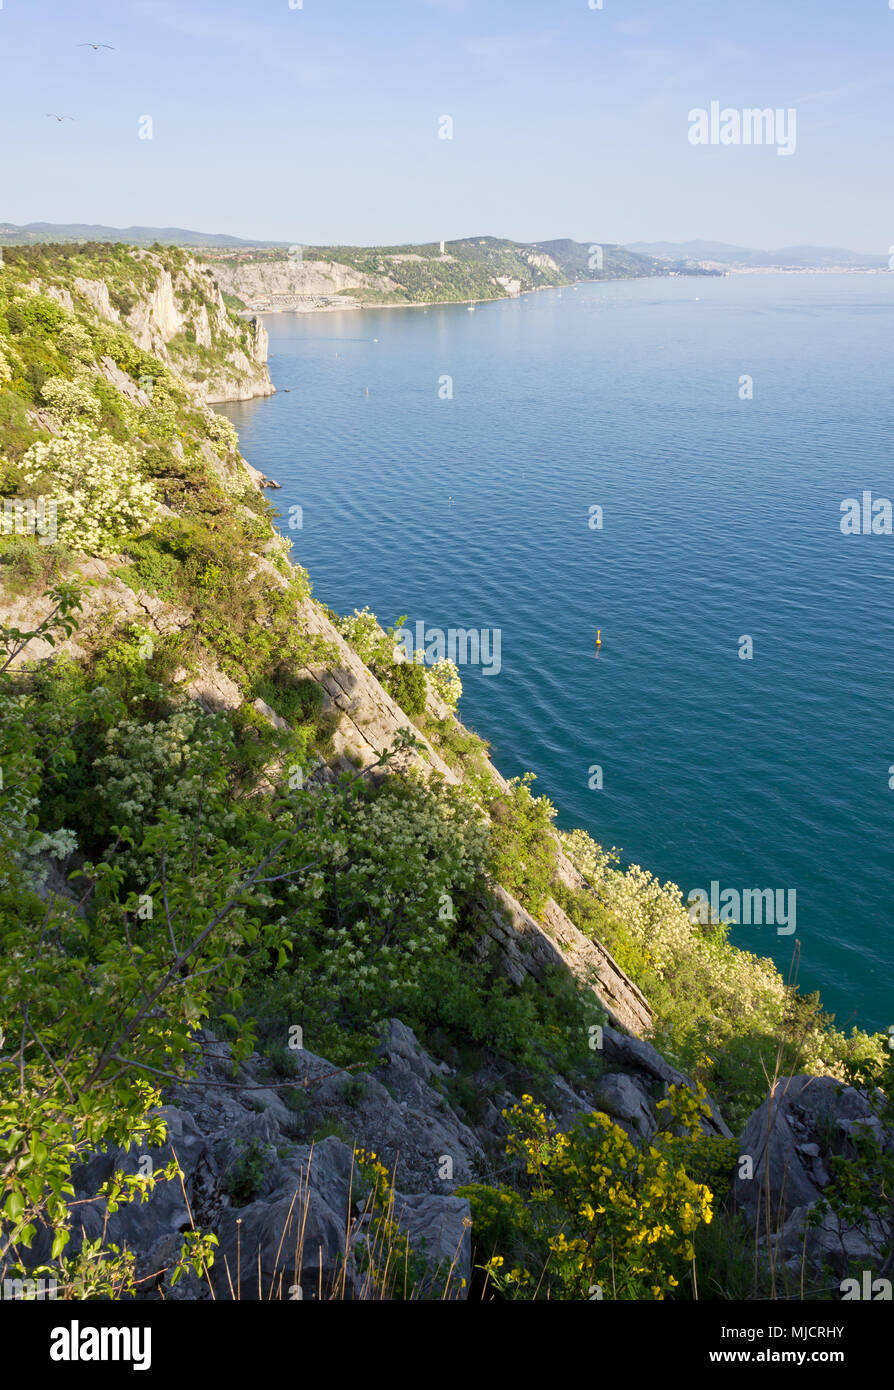 Northern adriatic rocky coast between Duino and Sistiana, near Trieste, Italy, in springtime - Stock Image